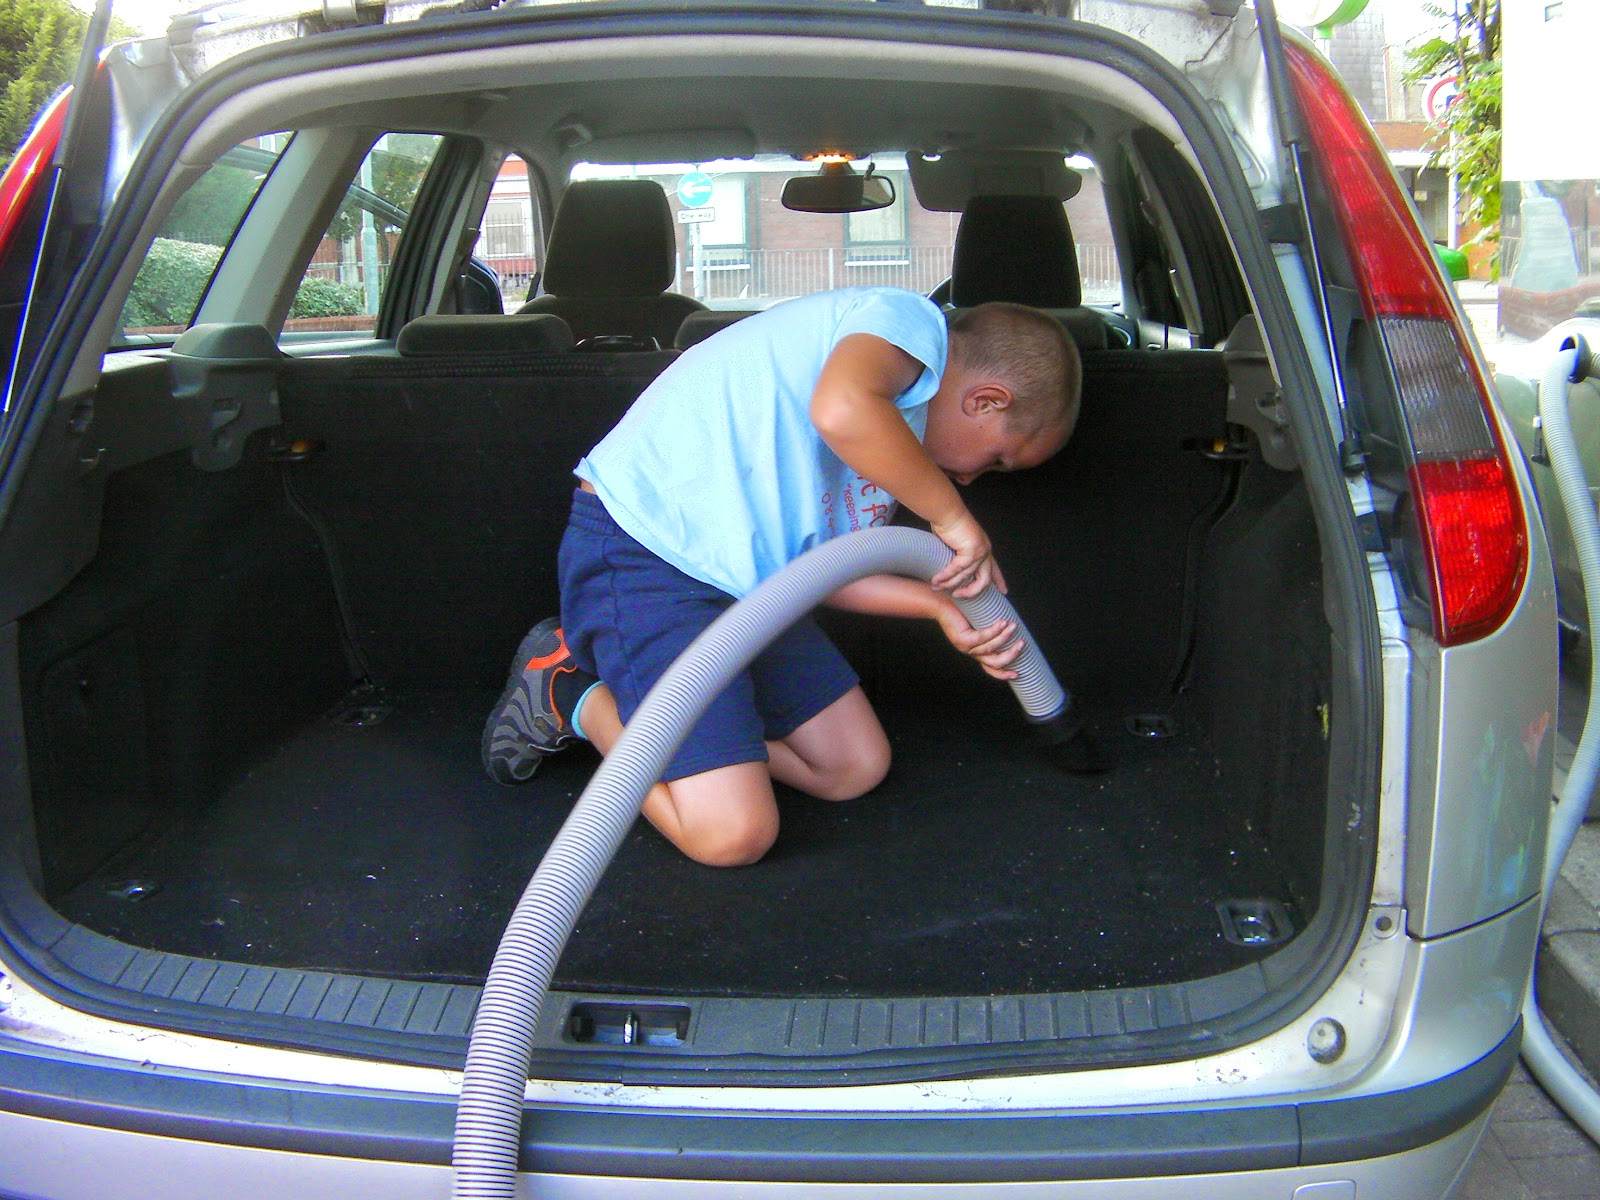 ford focus estate vacuuming the interior at petrol station